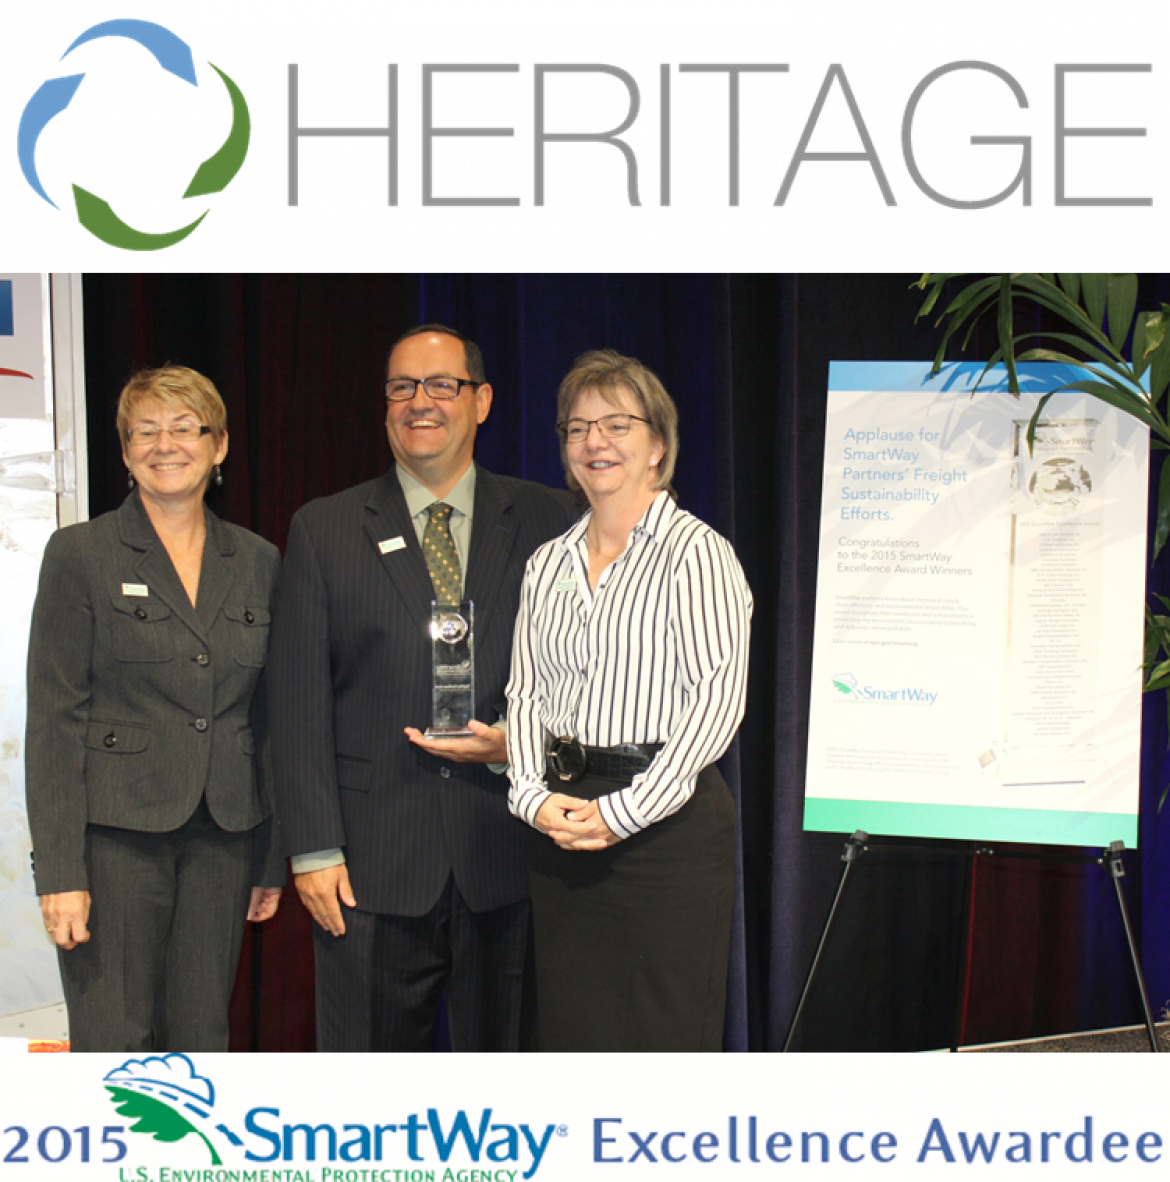 EPA SmartWay Honors Heritage Transport, LLC